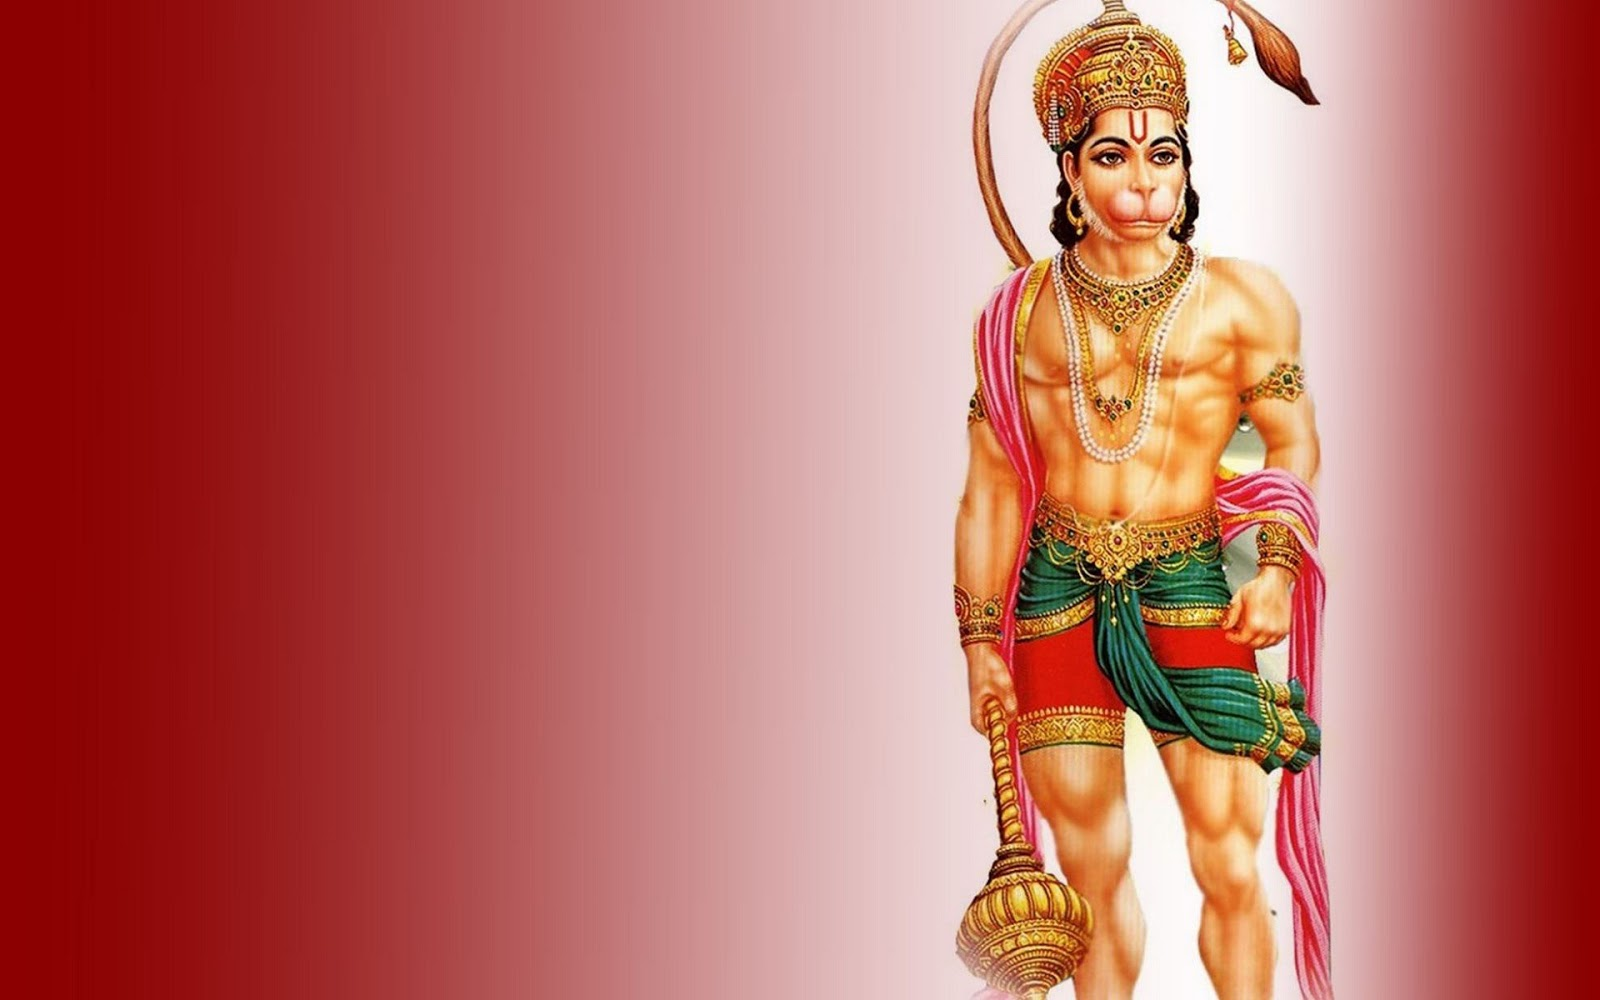 new full hd images of hanumanji free download love - images of love